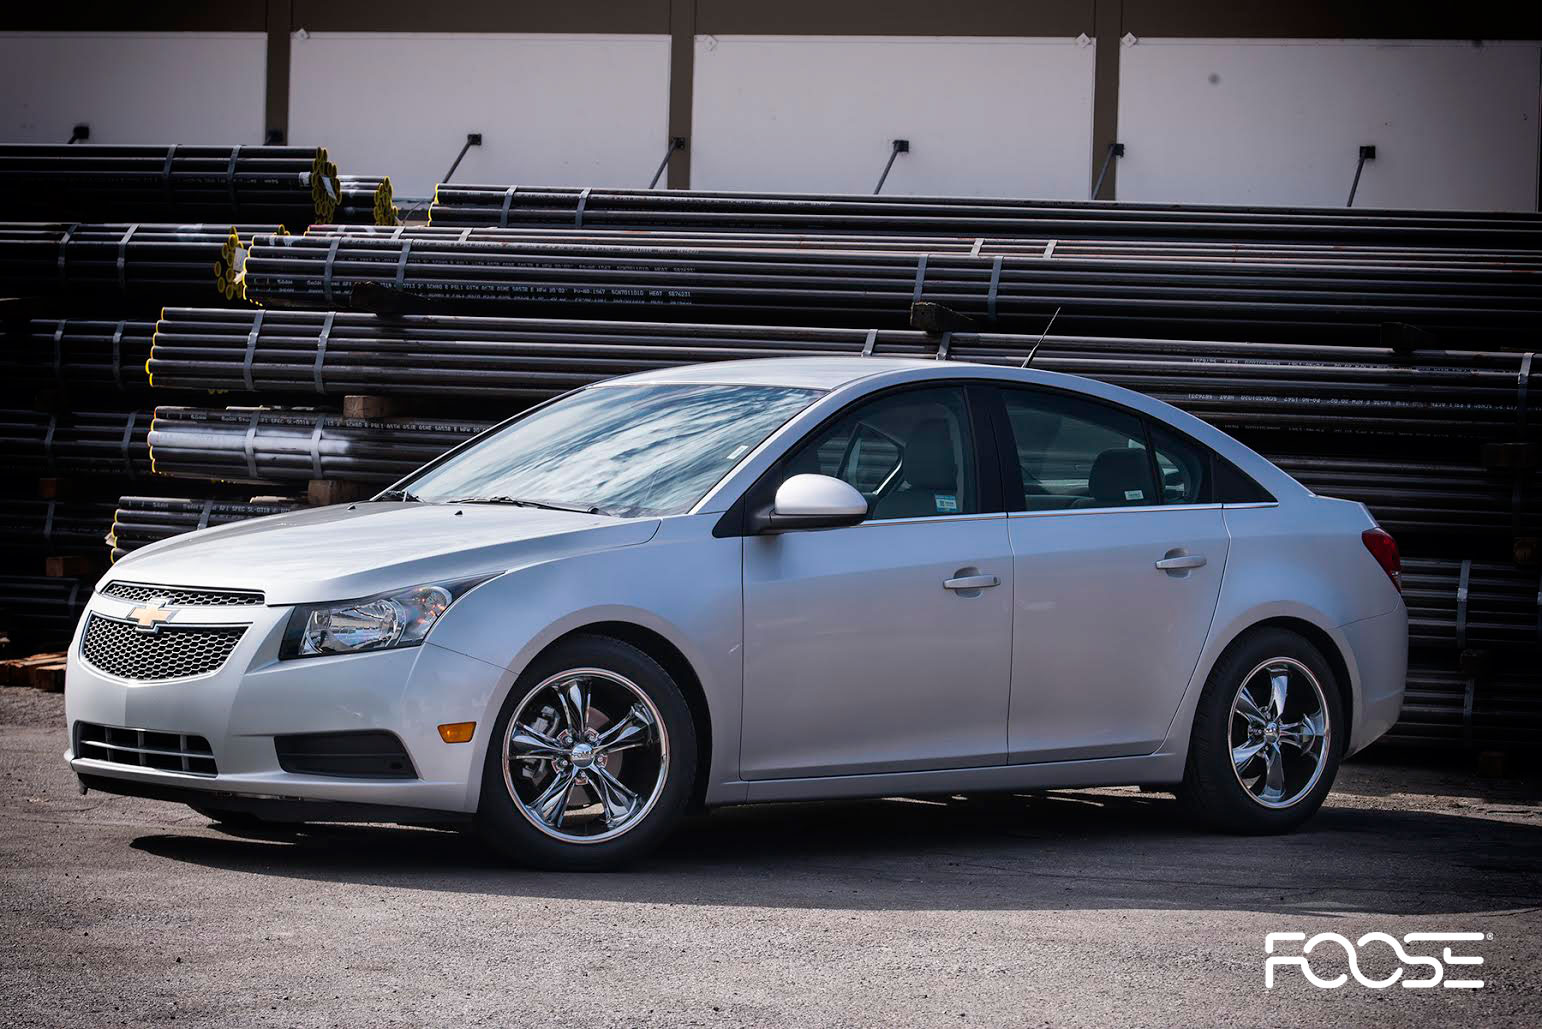 Chevrolet Cruze Tuning >> Car | Chevrolet Cruze on Foose Legend (PVD) - F103 Wheels ...